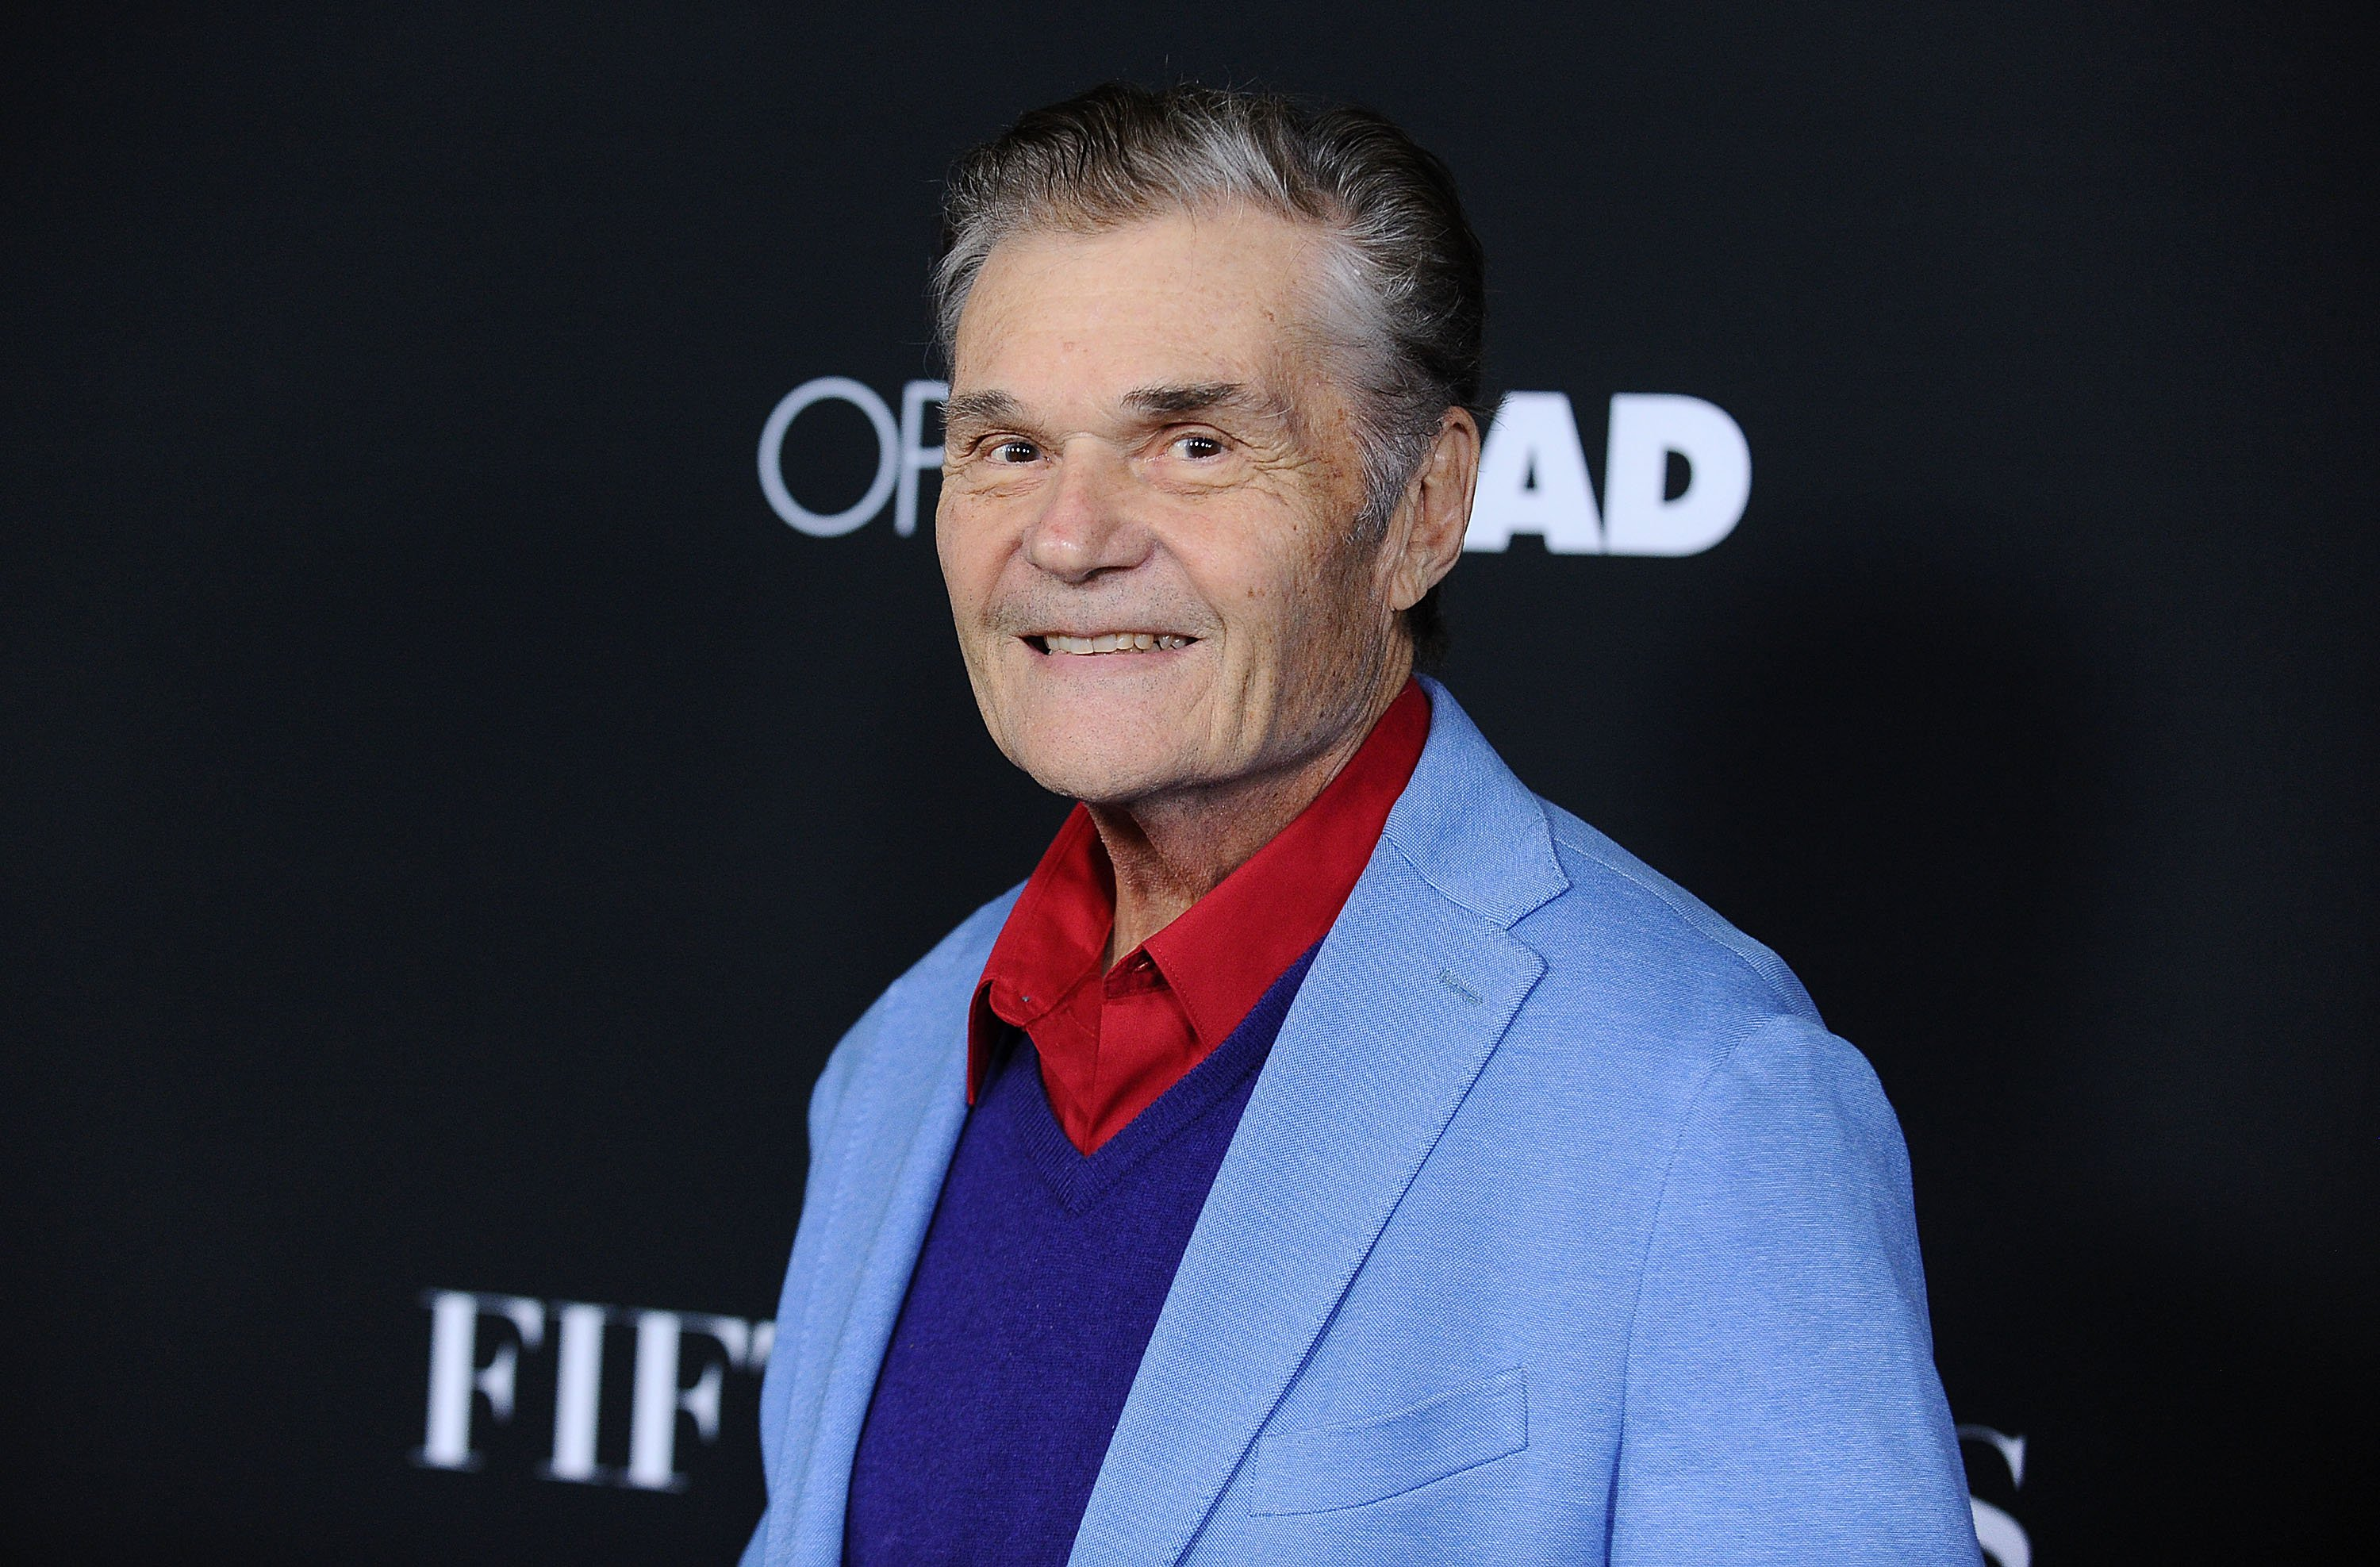 """Fred Willard attends the premiere of """"Fifty Shades of Black"""" on January 26, 2016, in Los Angeles, California. 